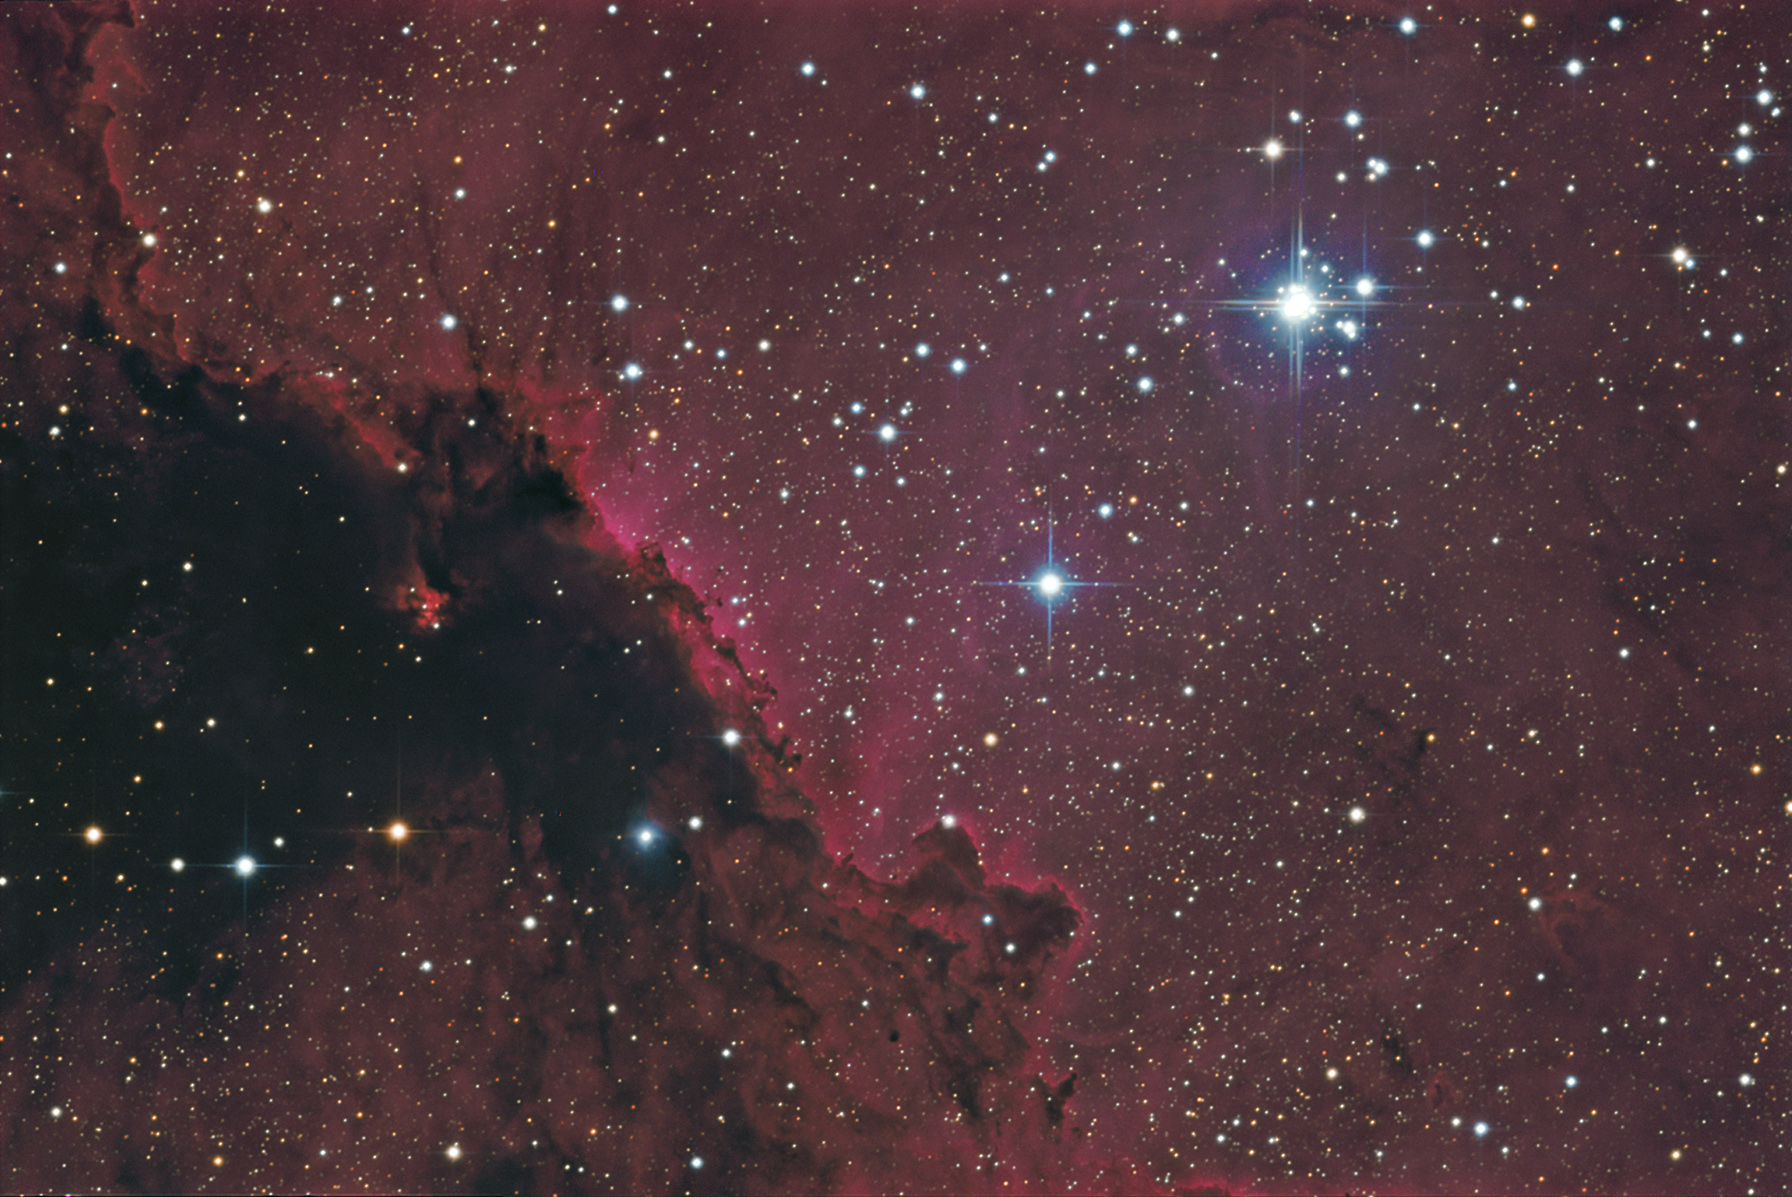 NGC6188 & NGC 6193 - Image Courtesy of Steve Crouch